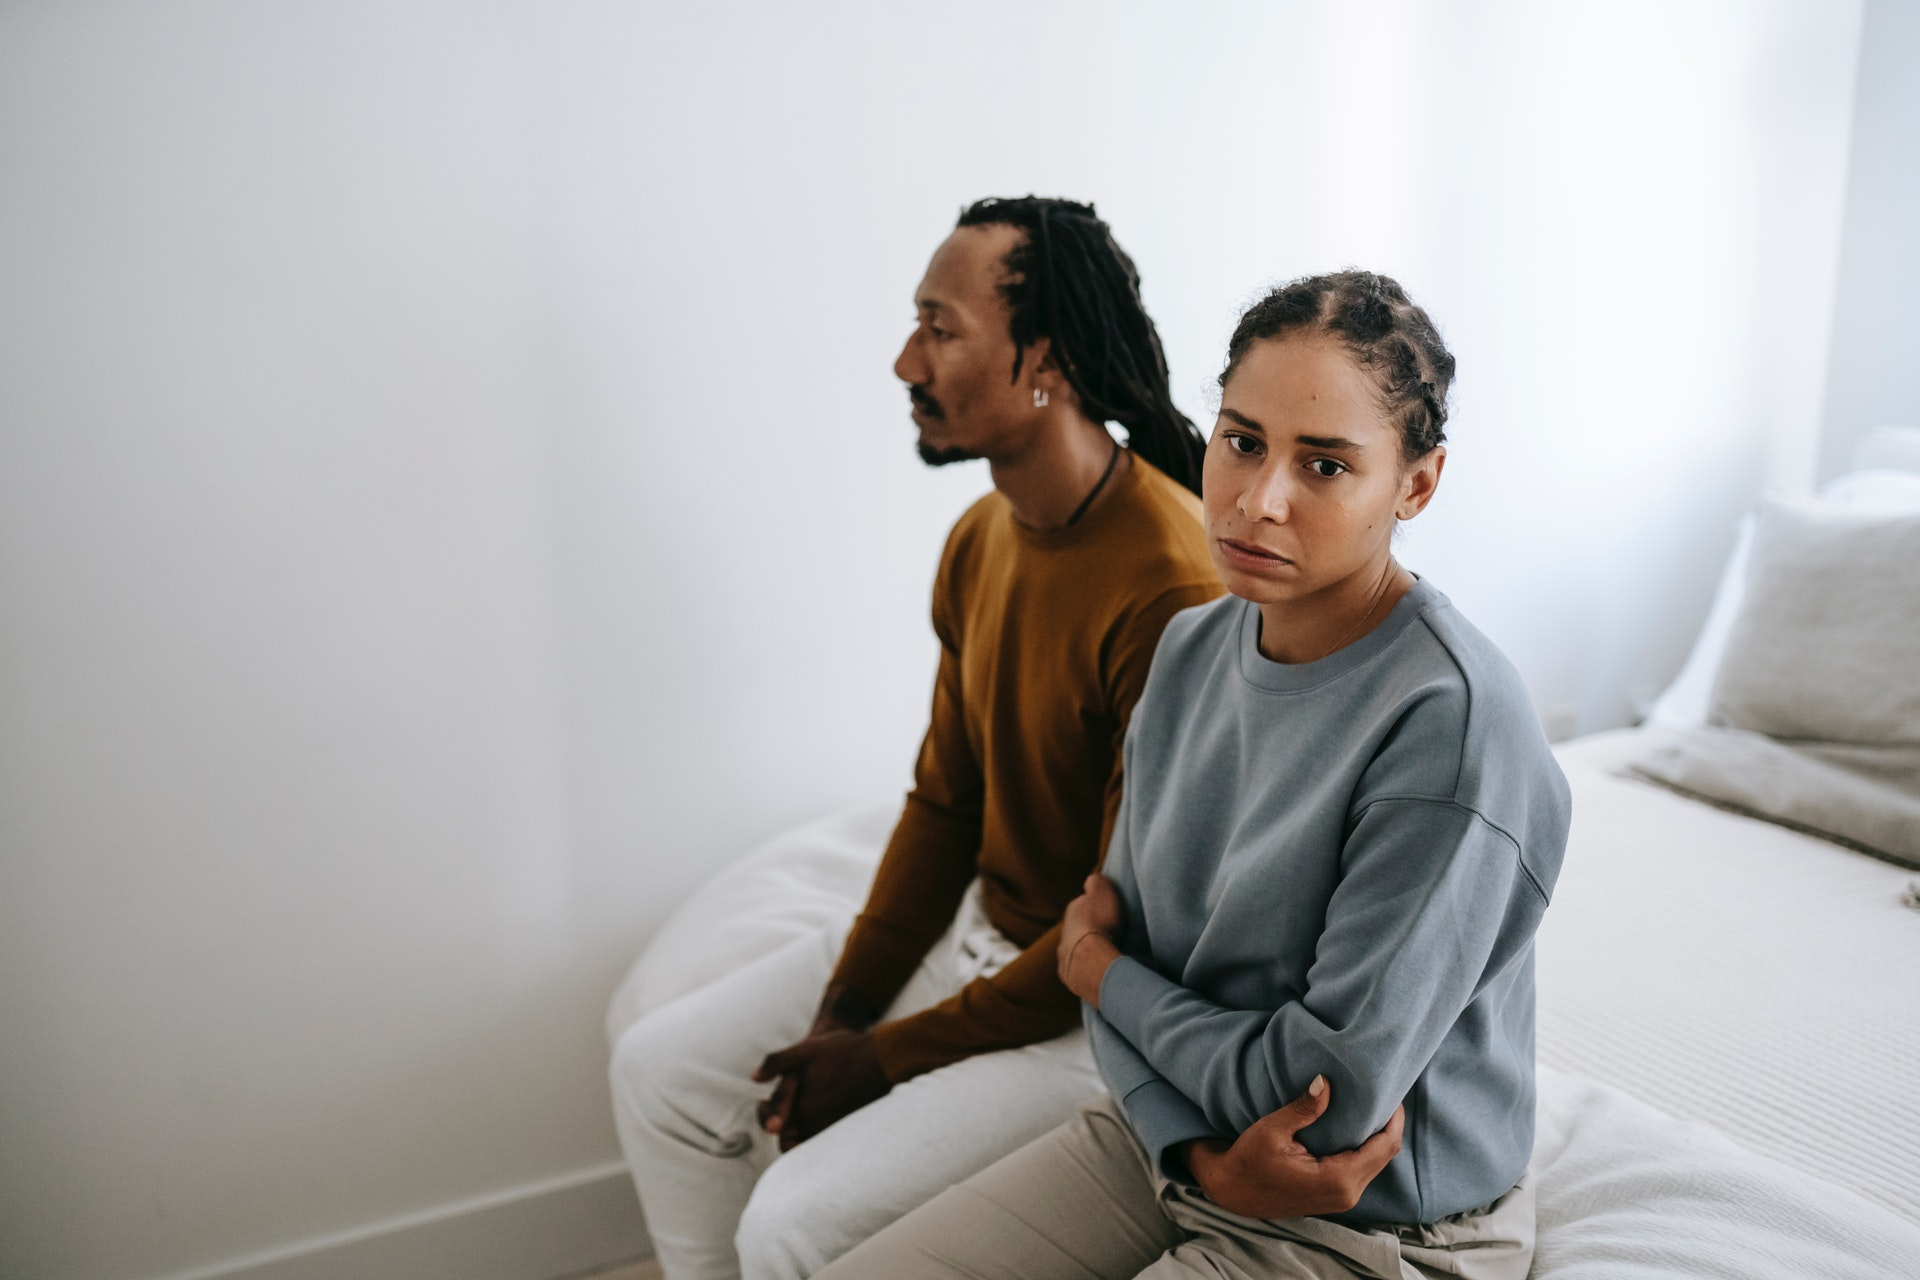 a man and a woman sitting on bed looking sad